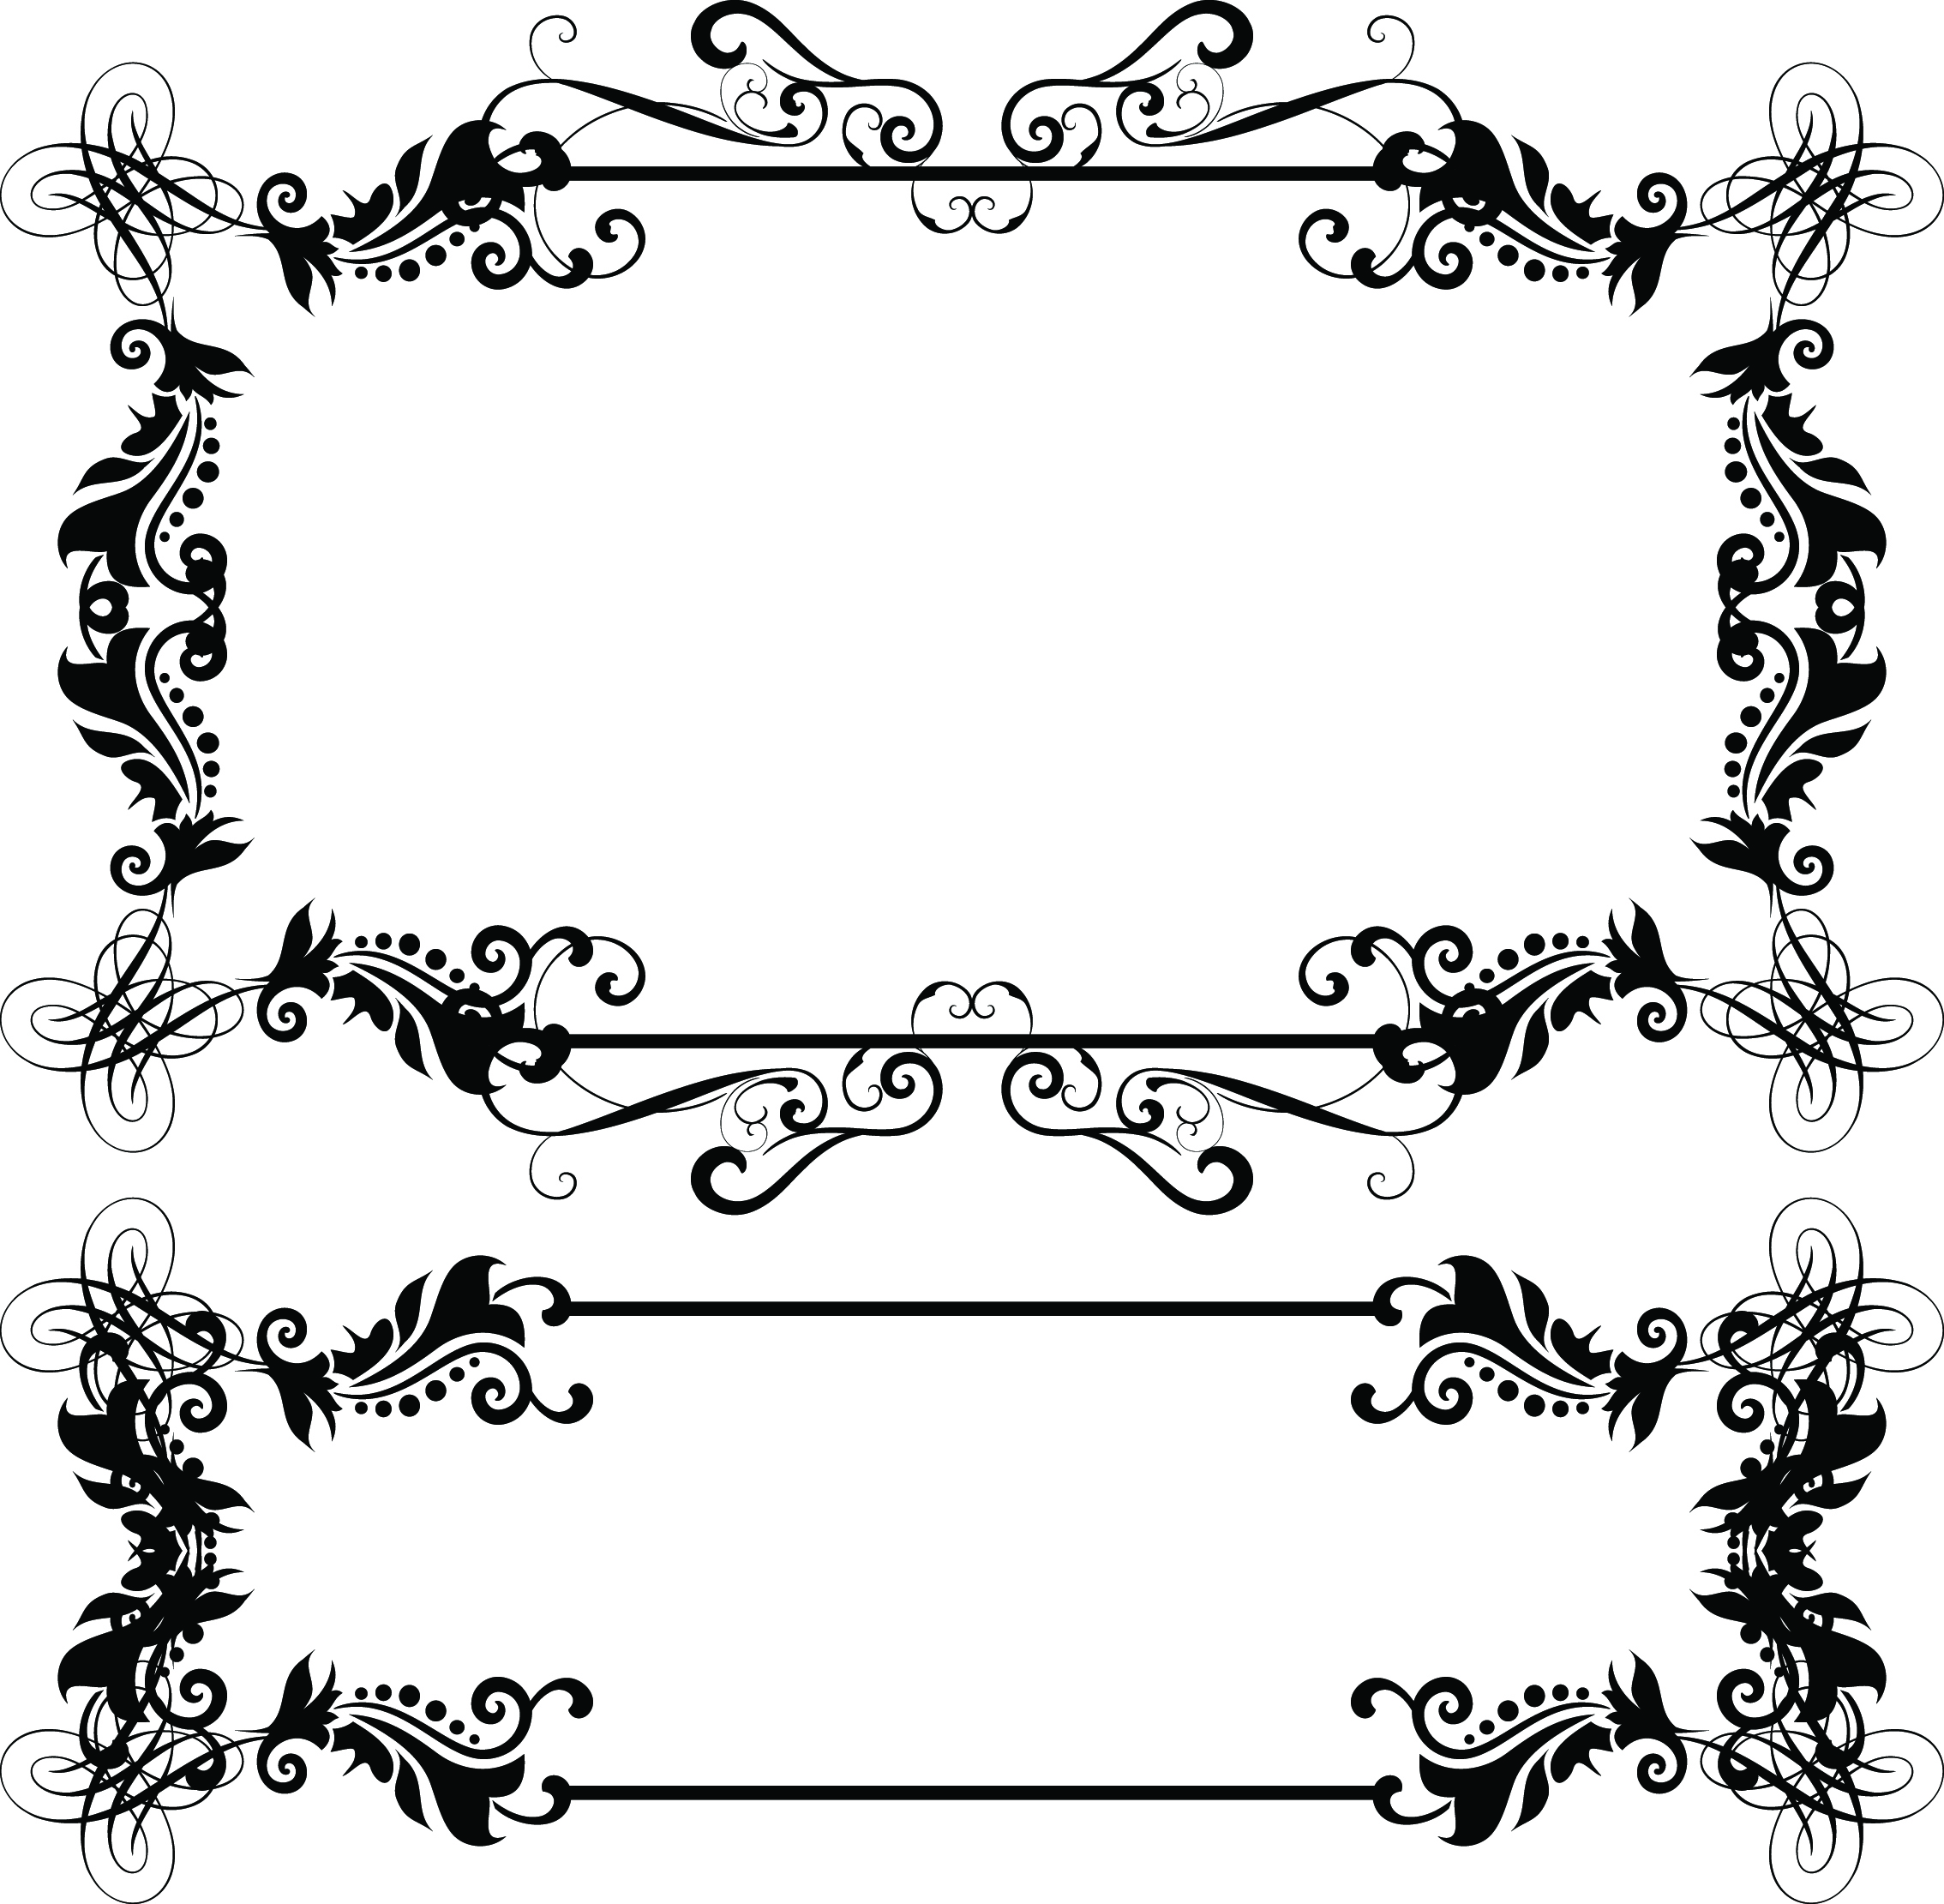 Islamic clipart borders clip art black and white Free Vector Borders, Download Free Clip Art, Free Clip Art on ... clip art black and white